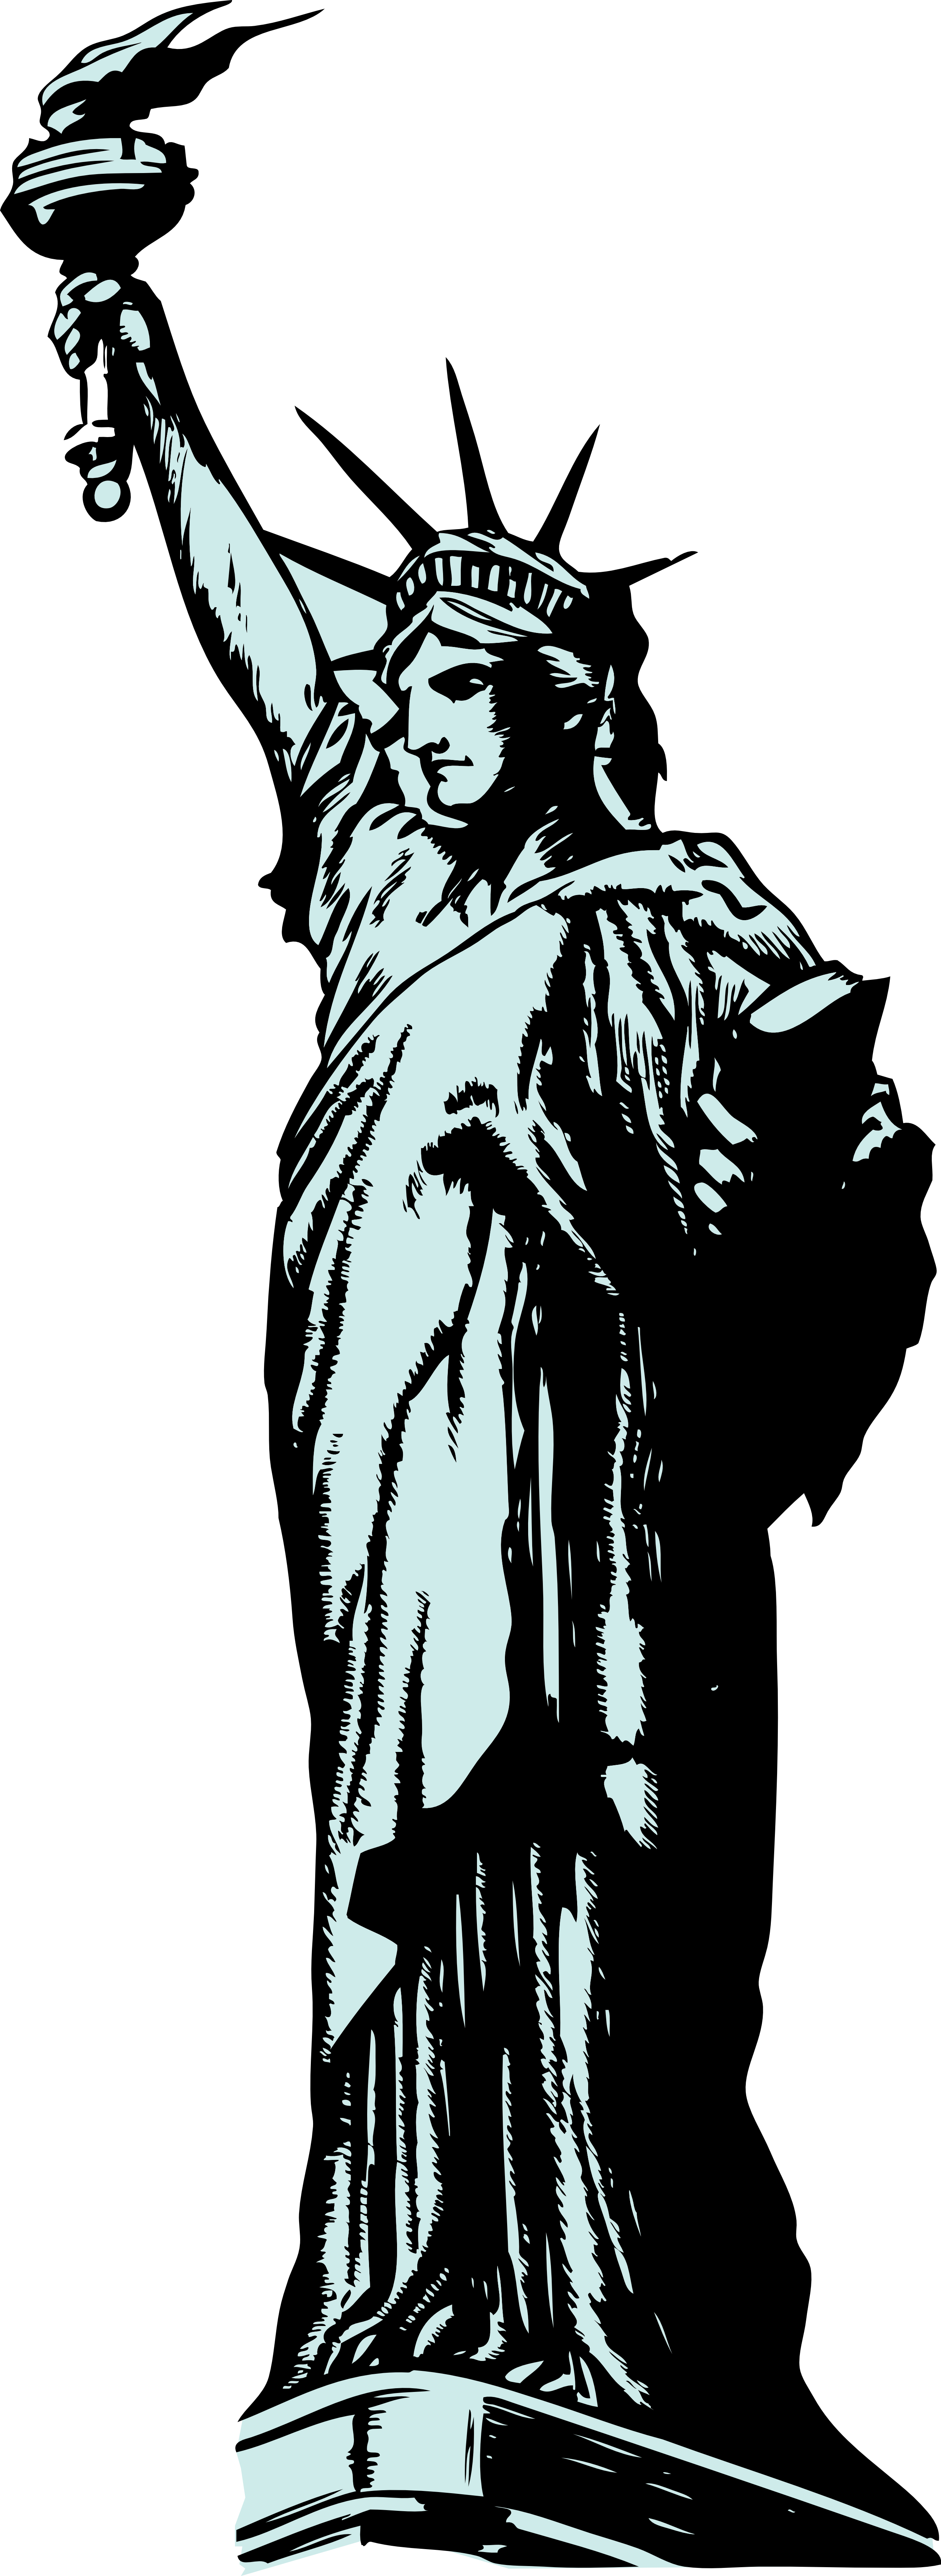 2555x6996 Image For Gt, Statue Of Liberty Silhouette Clip Art